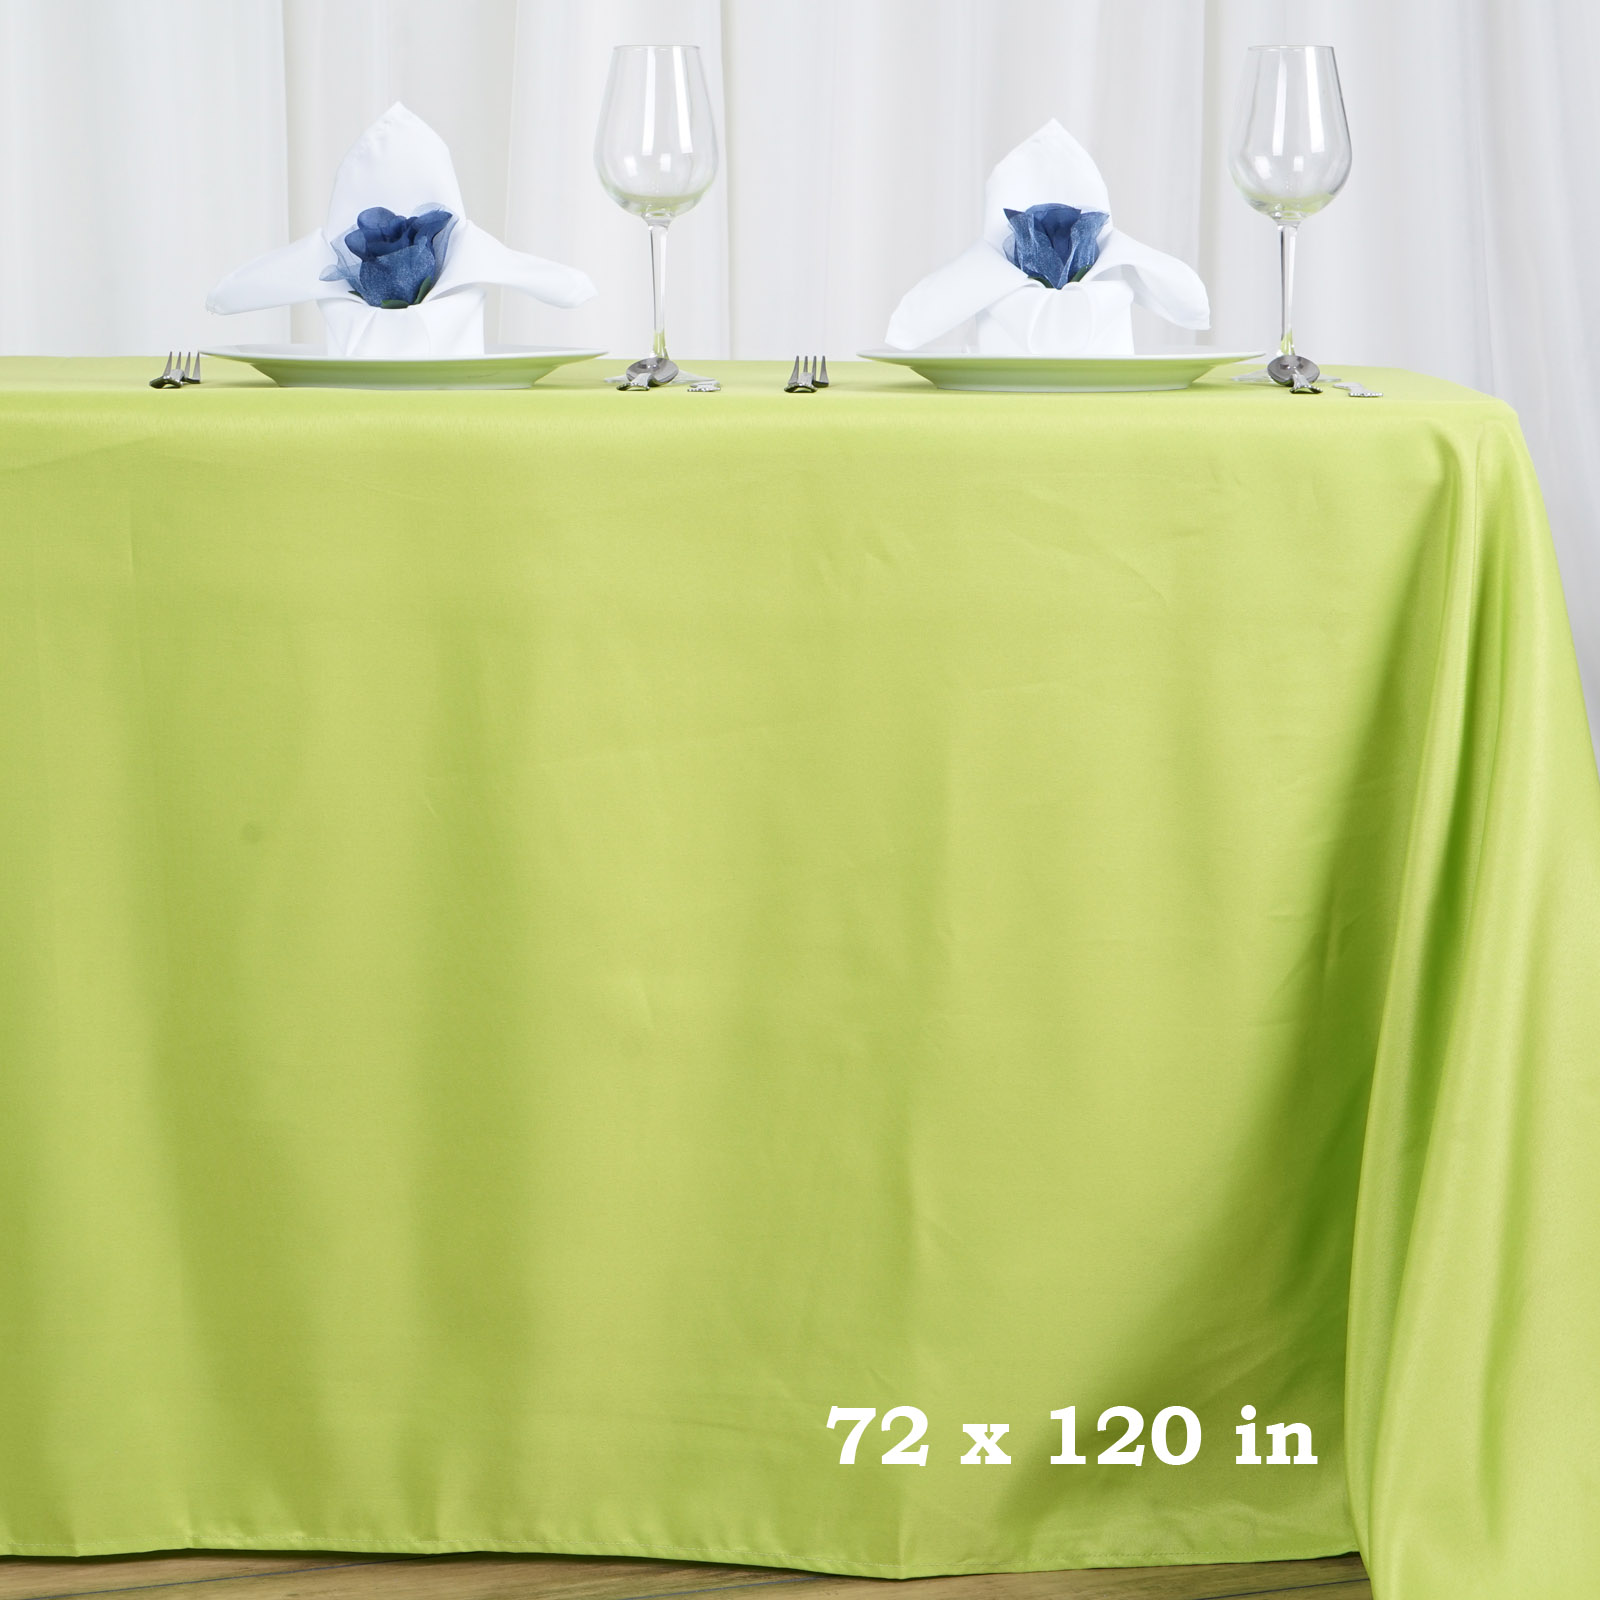 "BalsaCircle 72"" x 120"" Rectangular Polyester Tablecloth for Party Wedding Reception Catering Dining Home Table Linens"